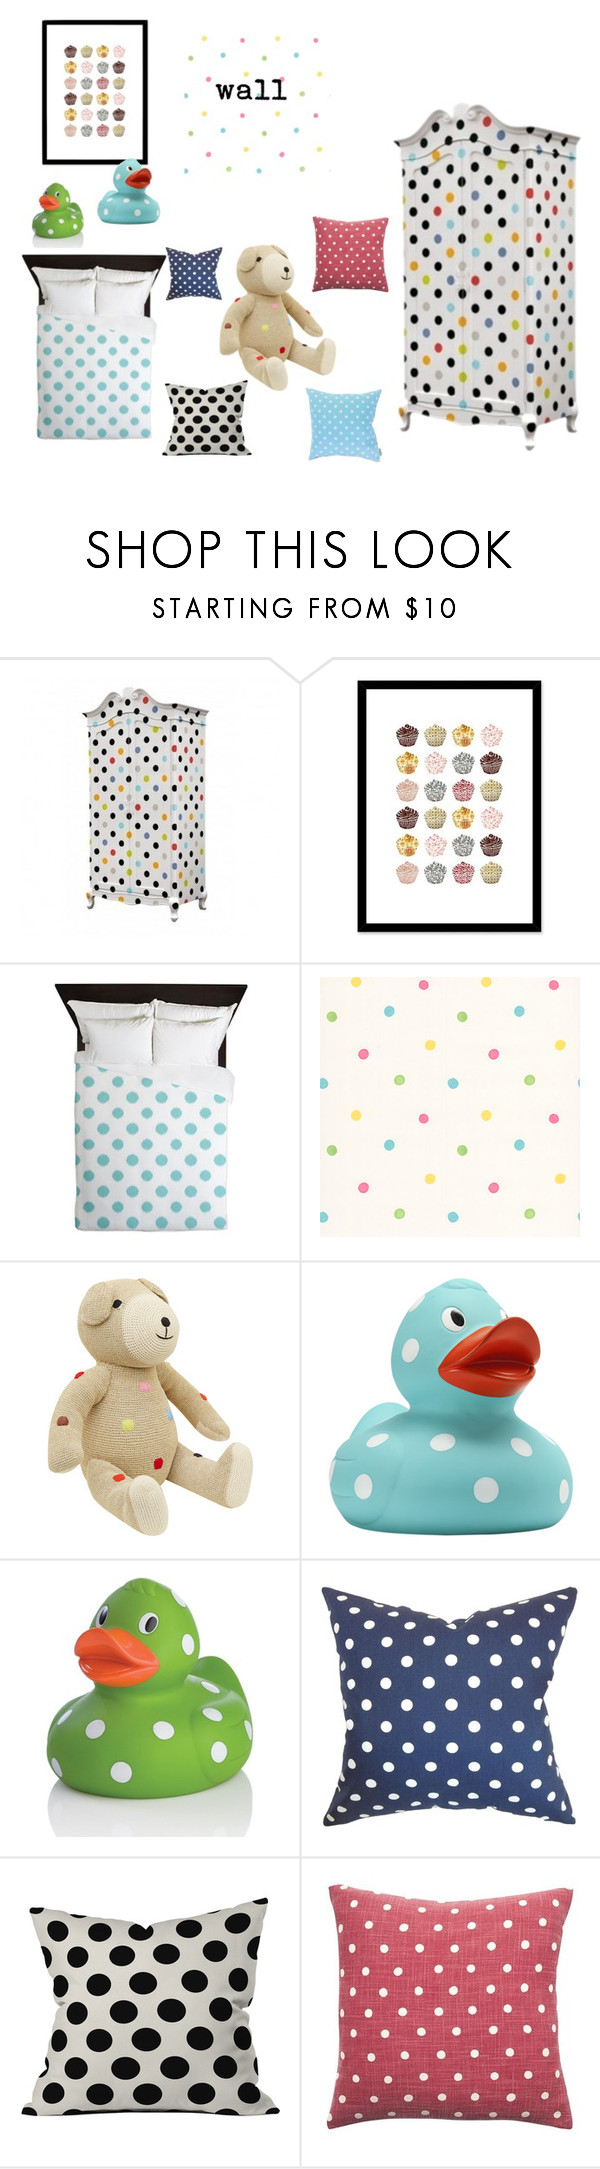 """""""Polka Dots Room"""" by megmarg on Polyvore featuring interior, interiors, interior design, home, home decor, interior decorating, Seletti, Curioos, Brewster Home Fashions and Anne-Claire Petit"""